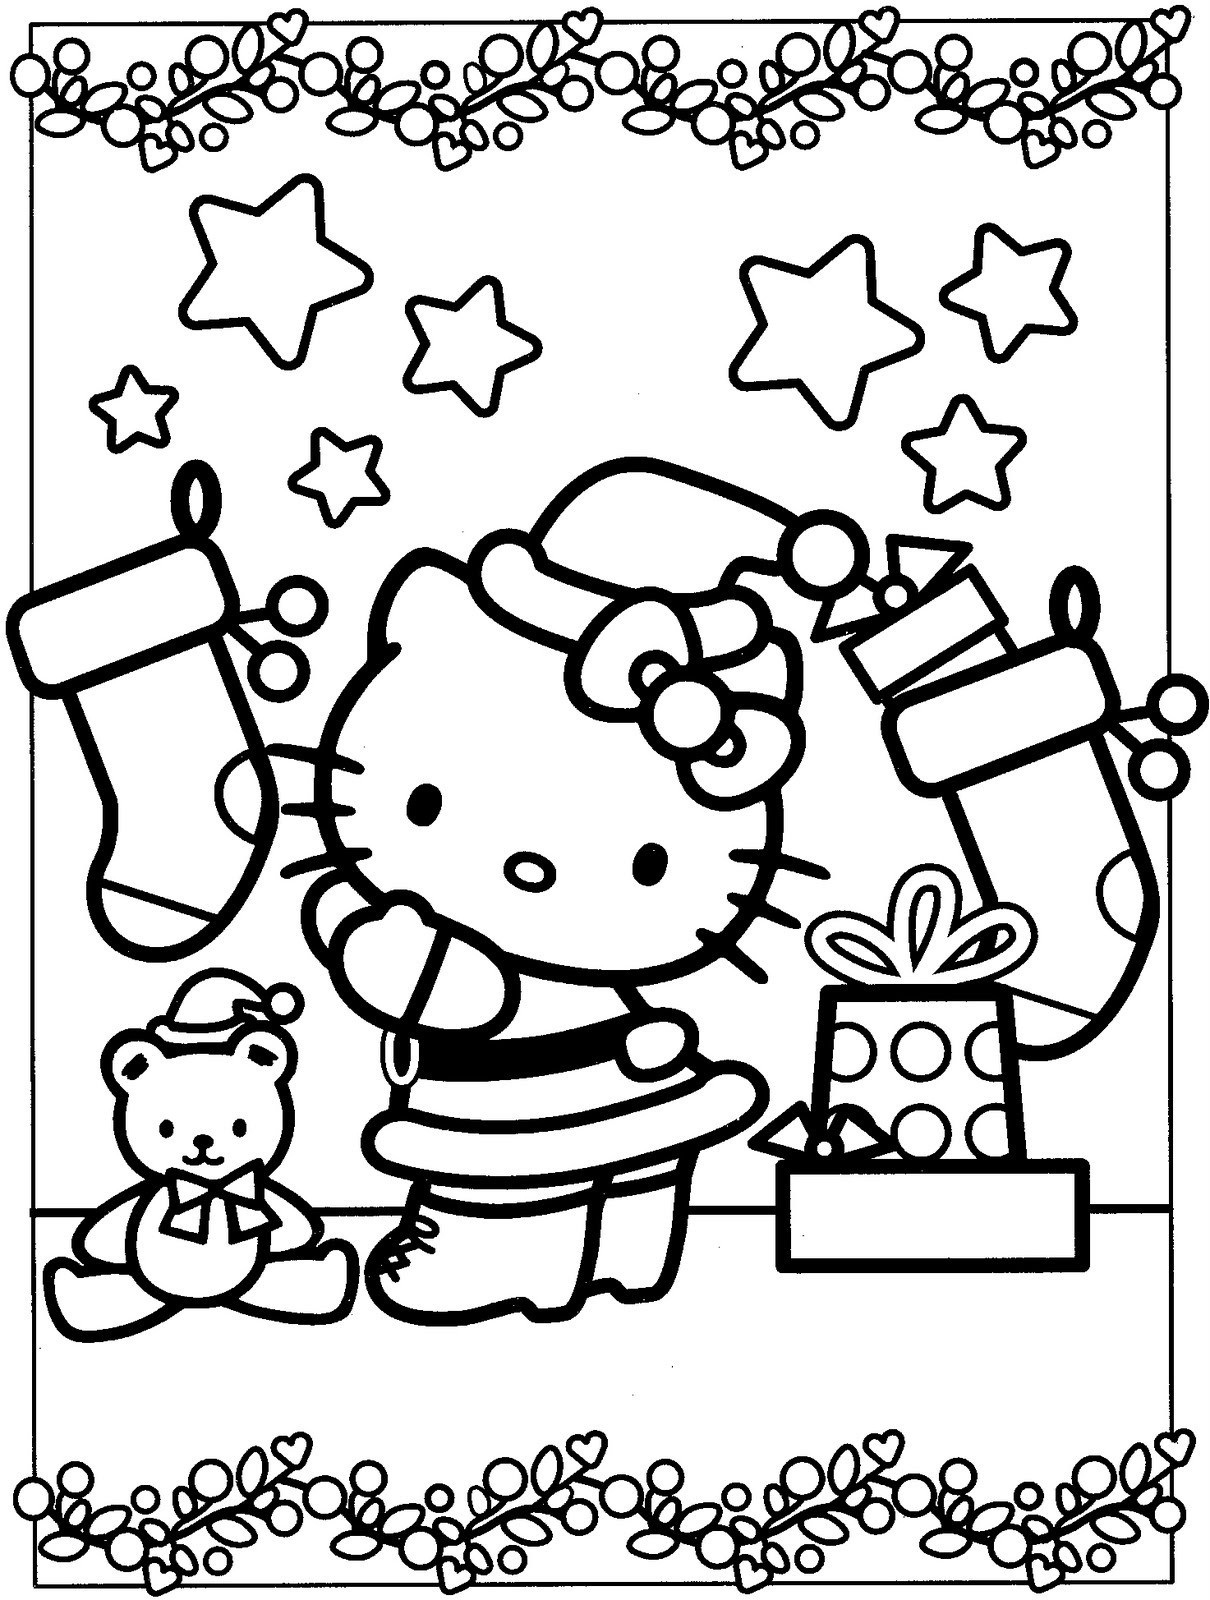 hello kitty christmas colouring pages free coloring pages printable pictures to color kids kitty christmas colouring pages hello